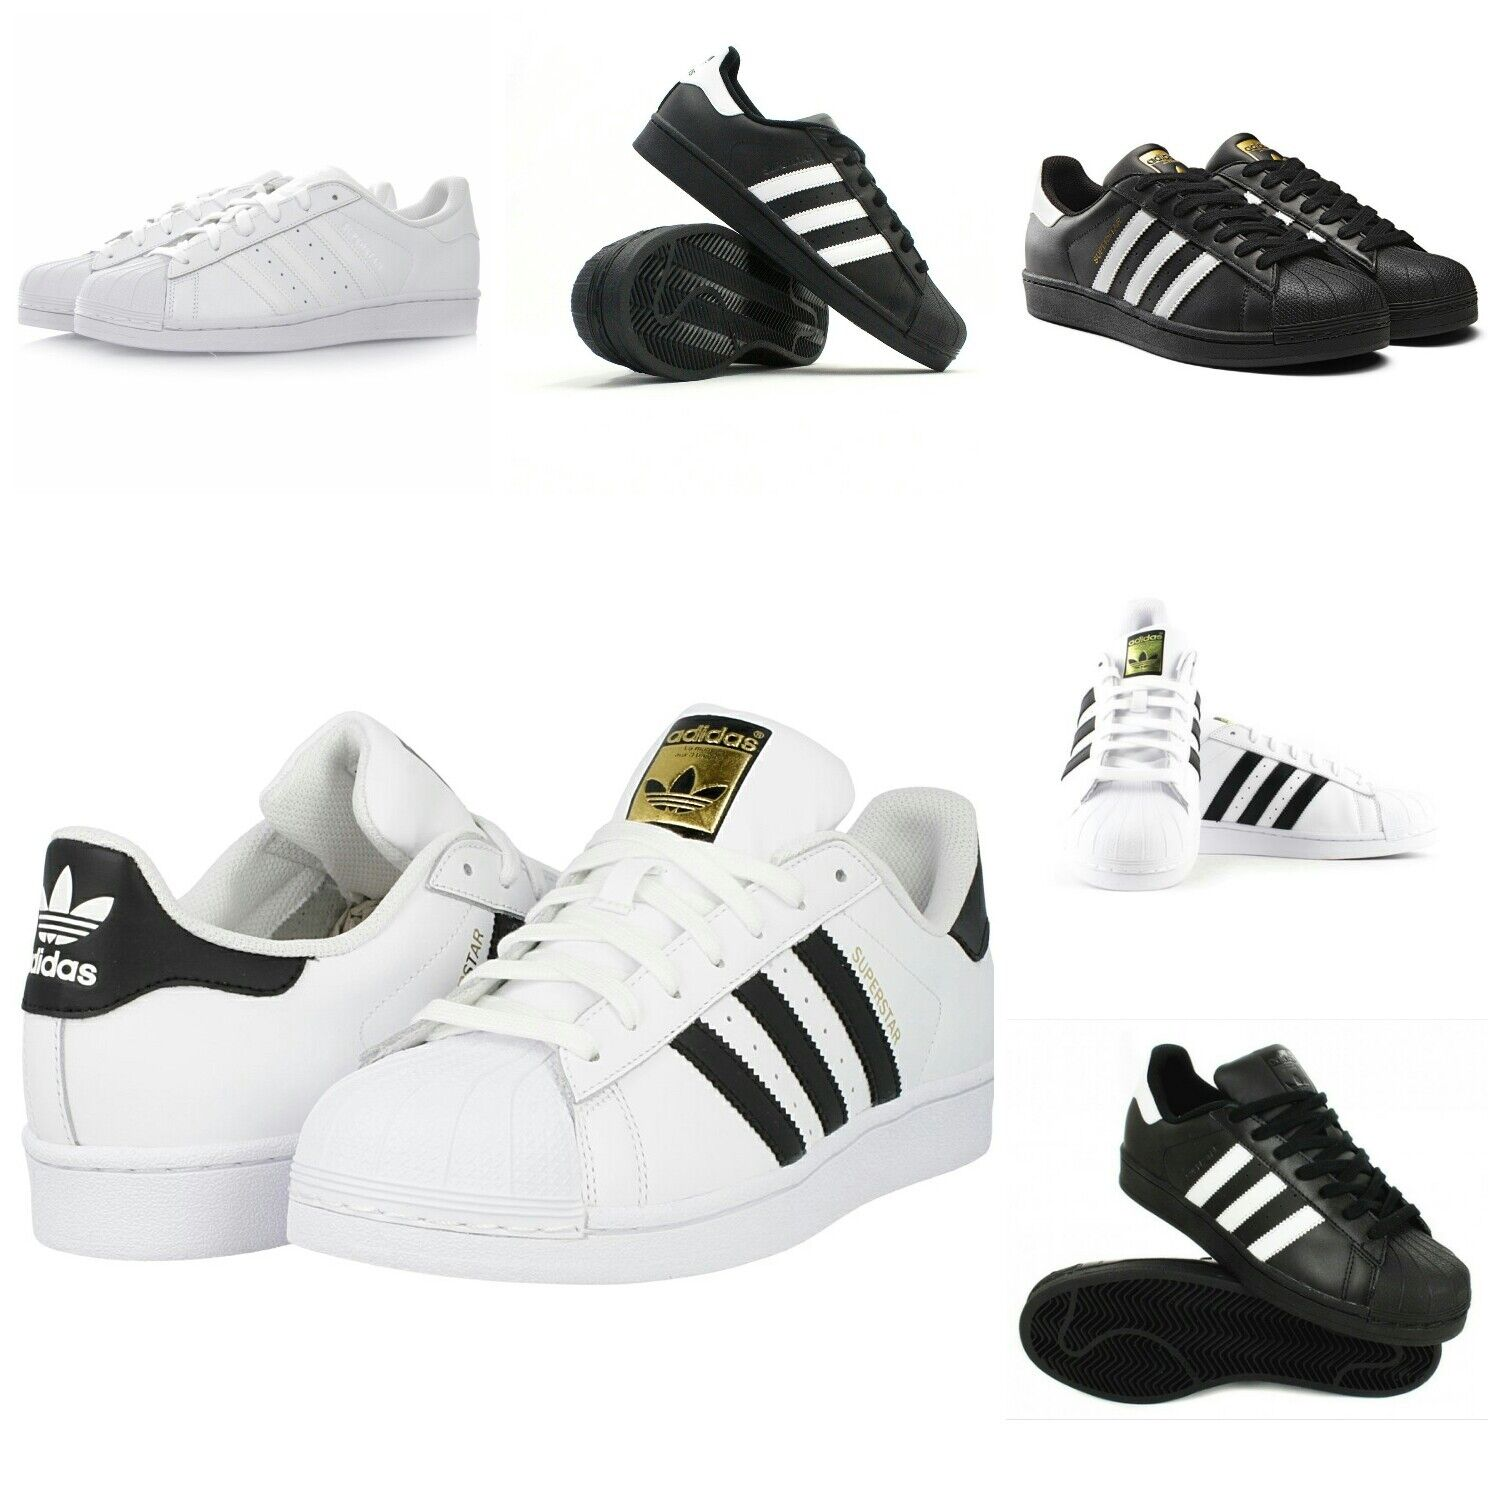 Adidas Superstar Hombres Trainers and Sneakers Zapatos - Negro and Trainers Blanco - c00aed